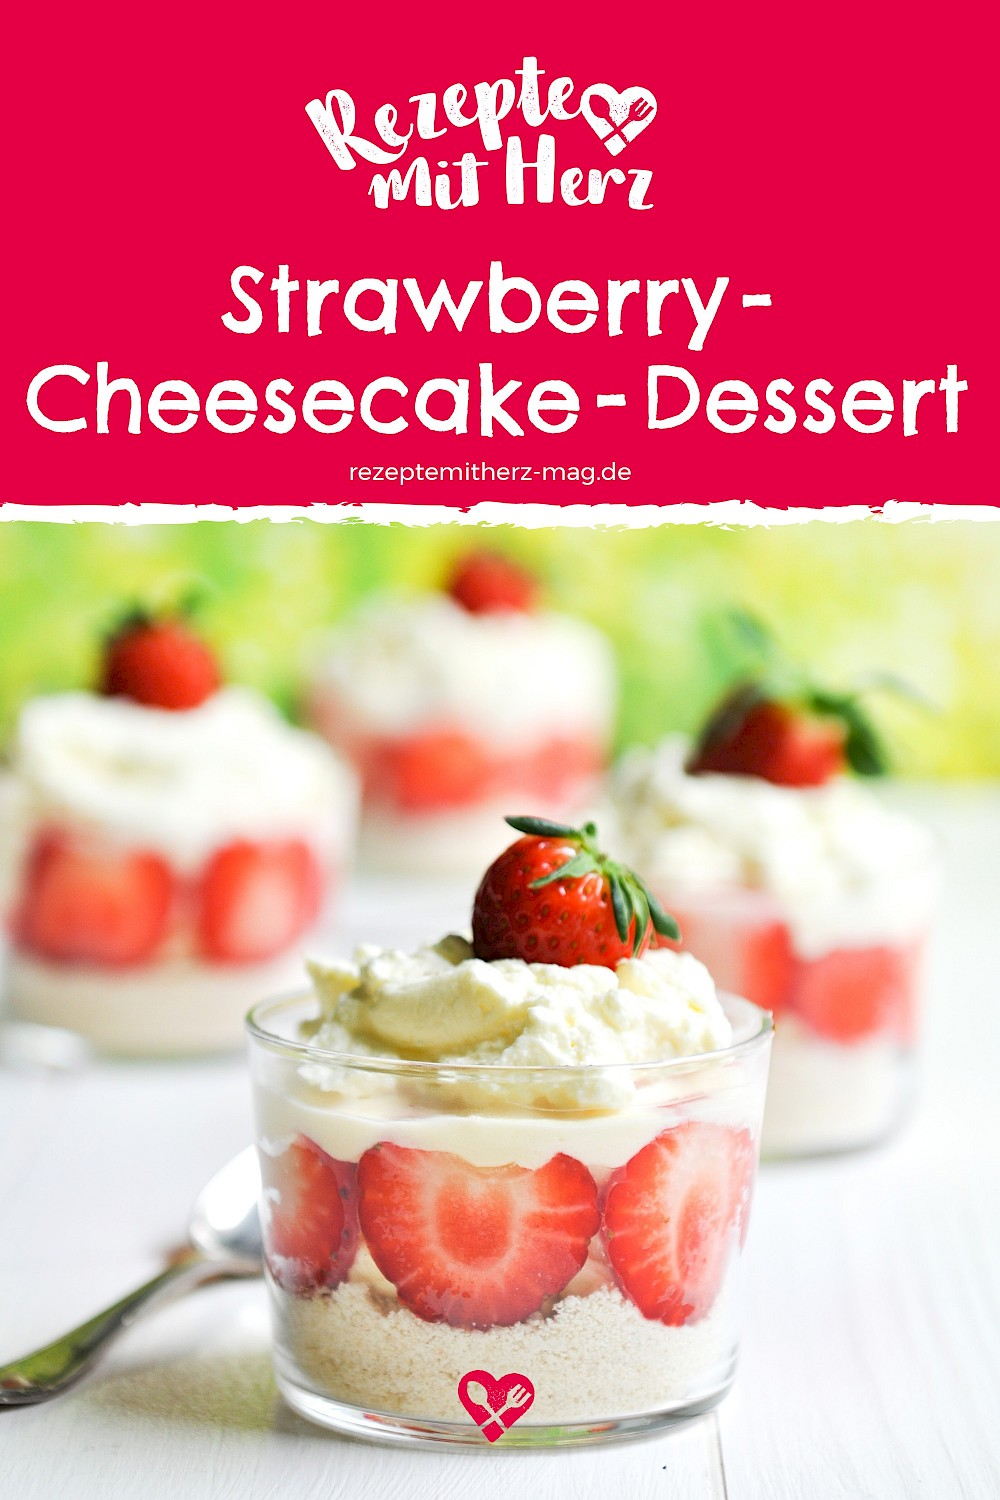 Strawberry-Cheesecake-Dessert. Thermomix-Rezept